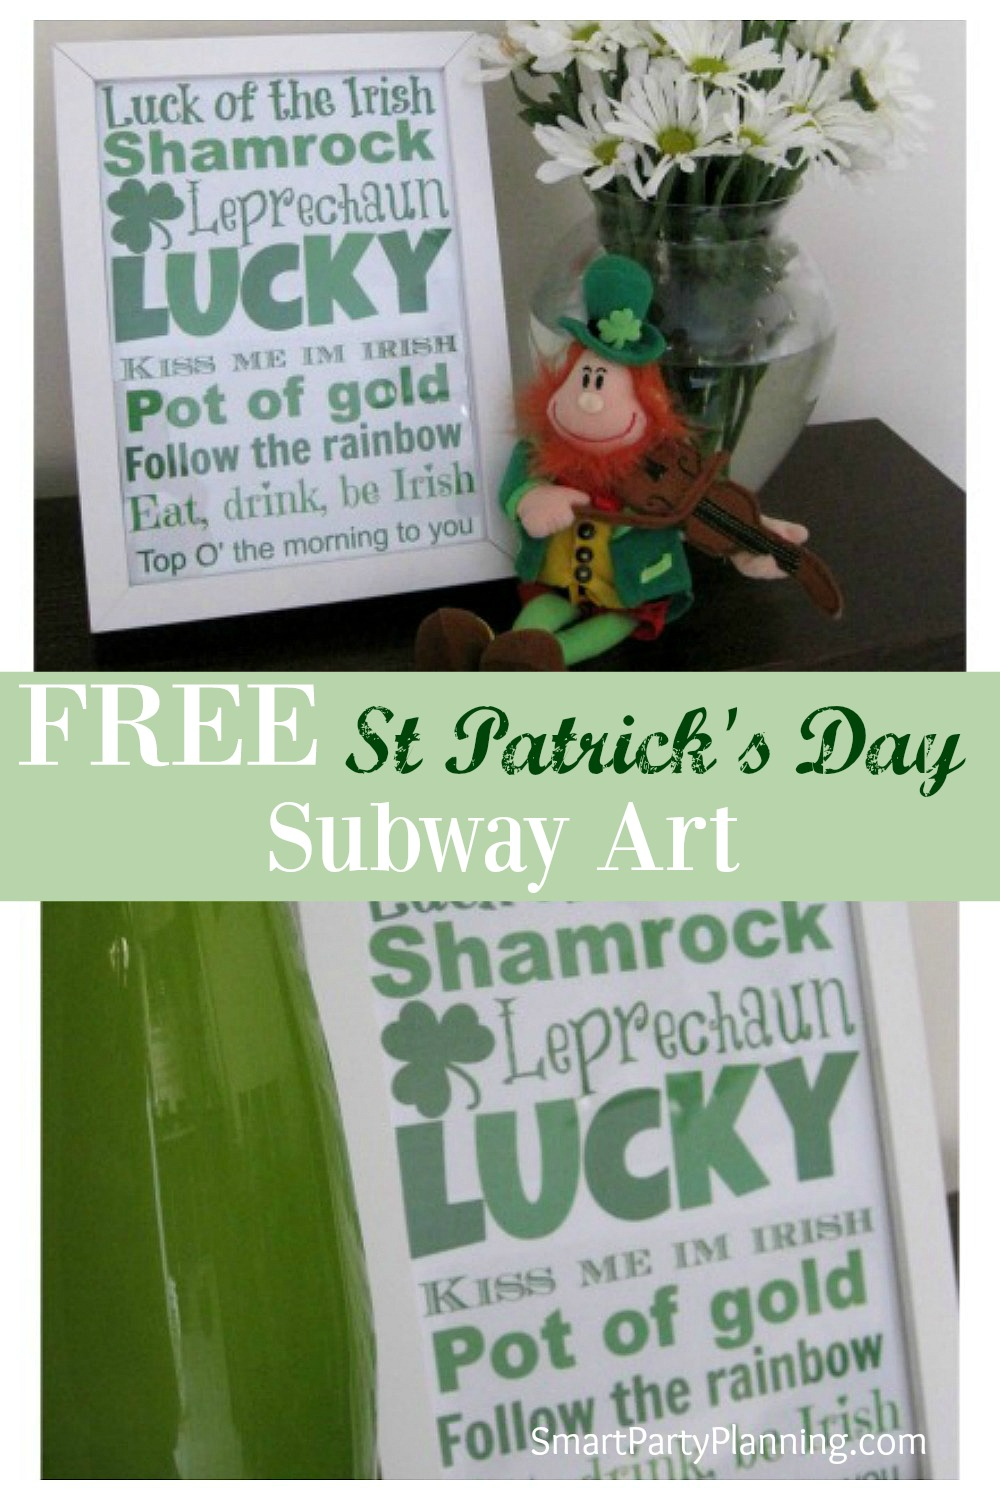 This FREE St Patrick's Day Subway art is sure to give the Irish spirit in your home. It's lovely home decor plus great to get out at parties.